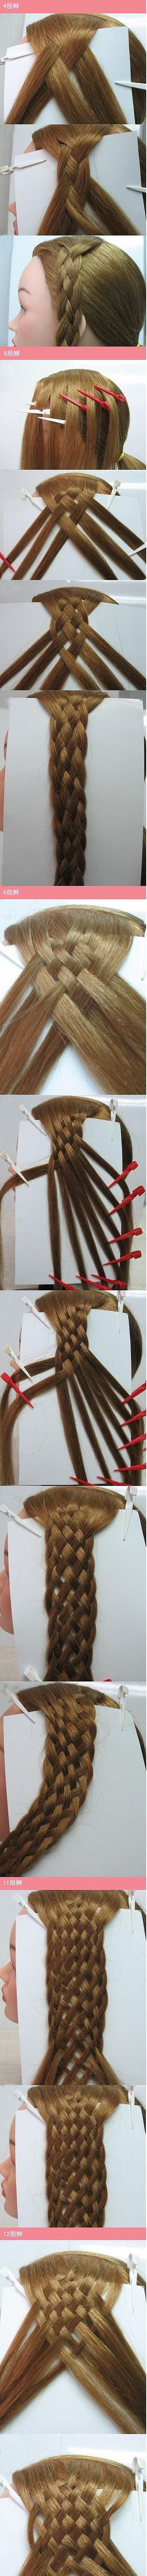 Great way to learn braiding!